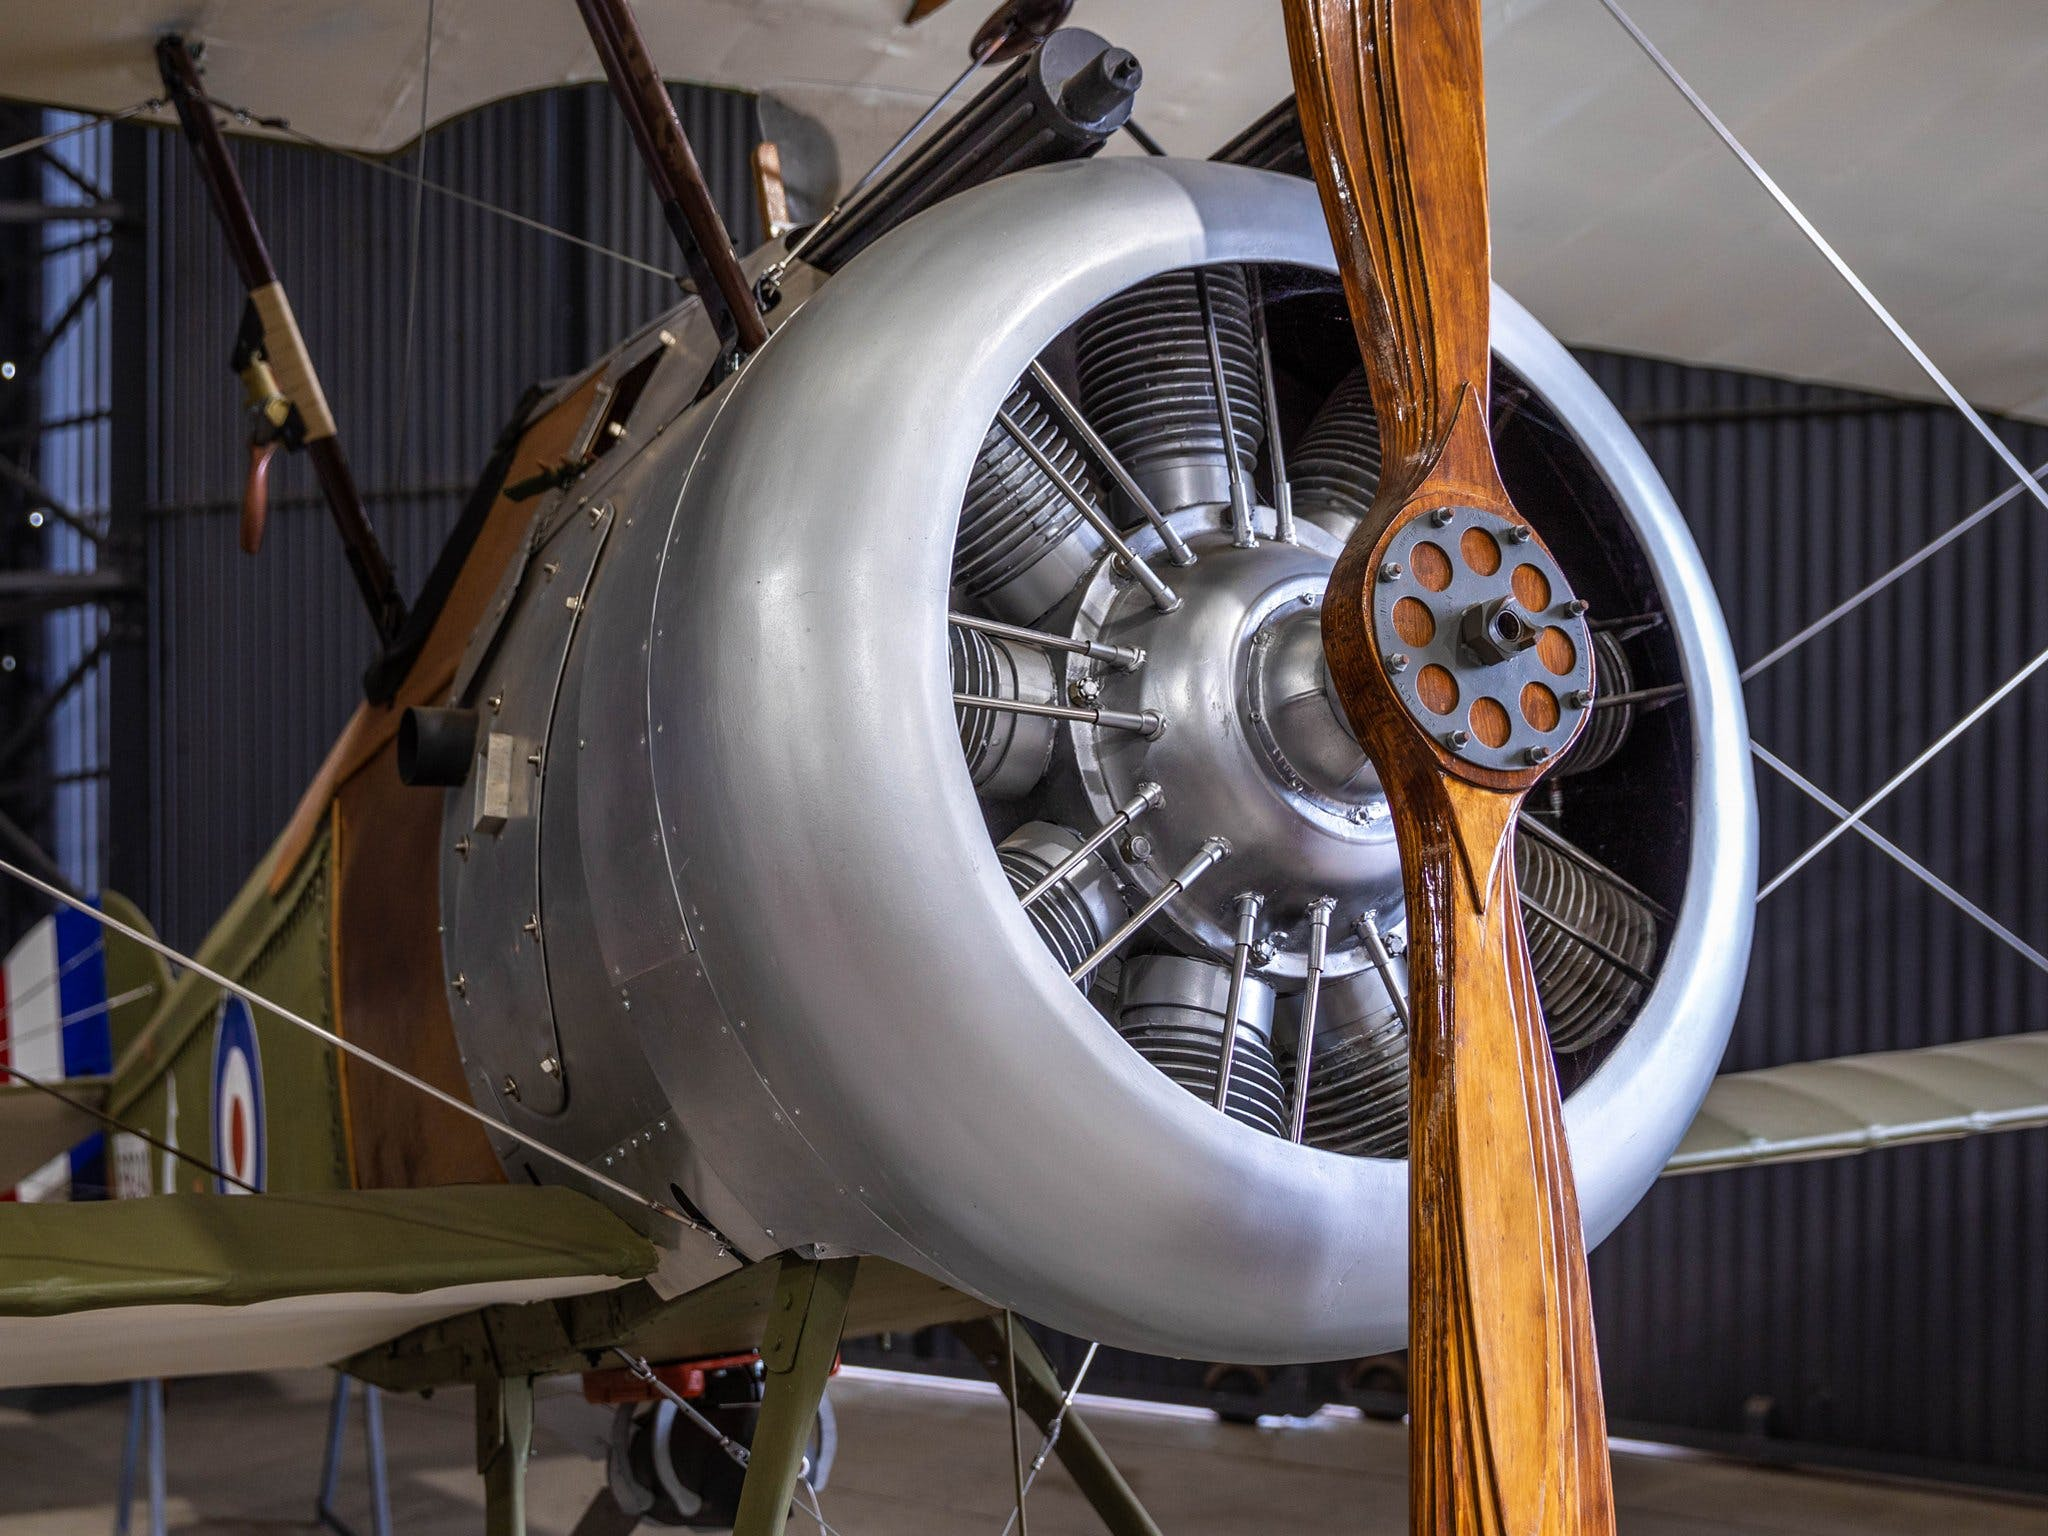 RAAF Amberley Aviation Heritage Centre - Accommodation Mt Buller